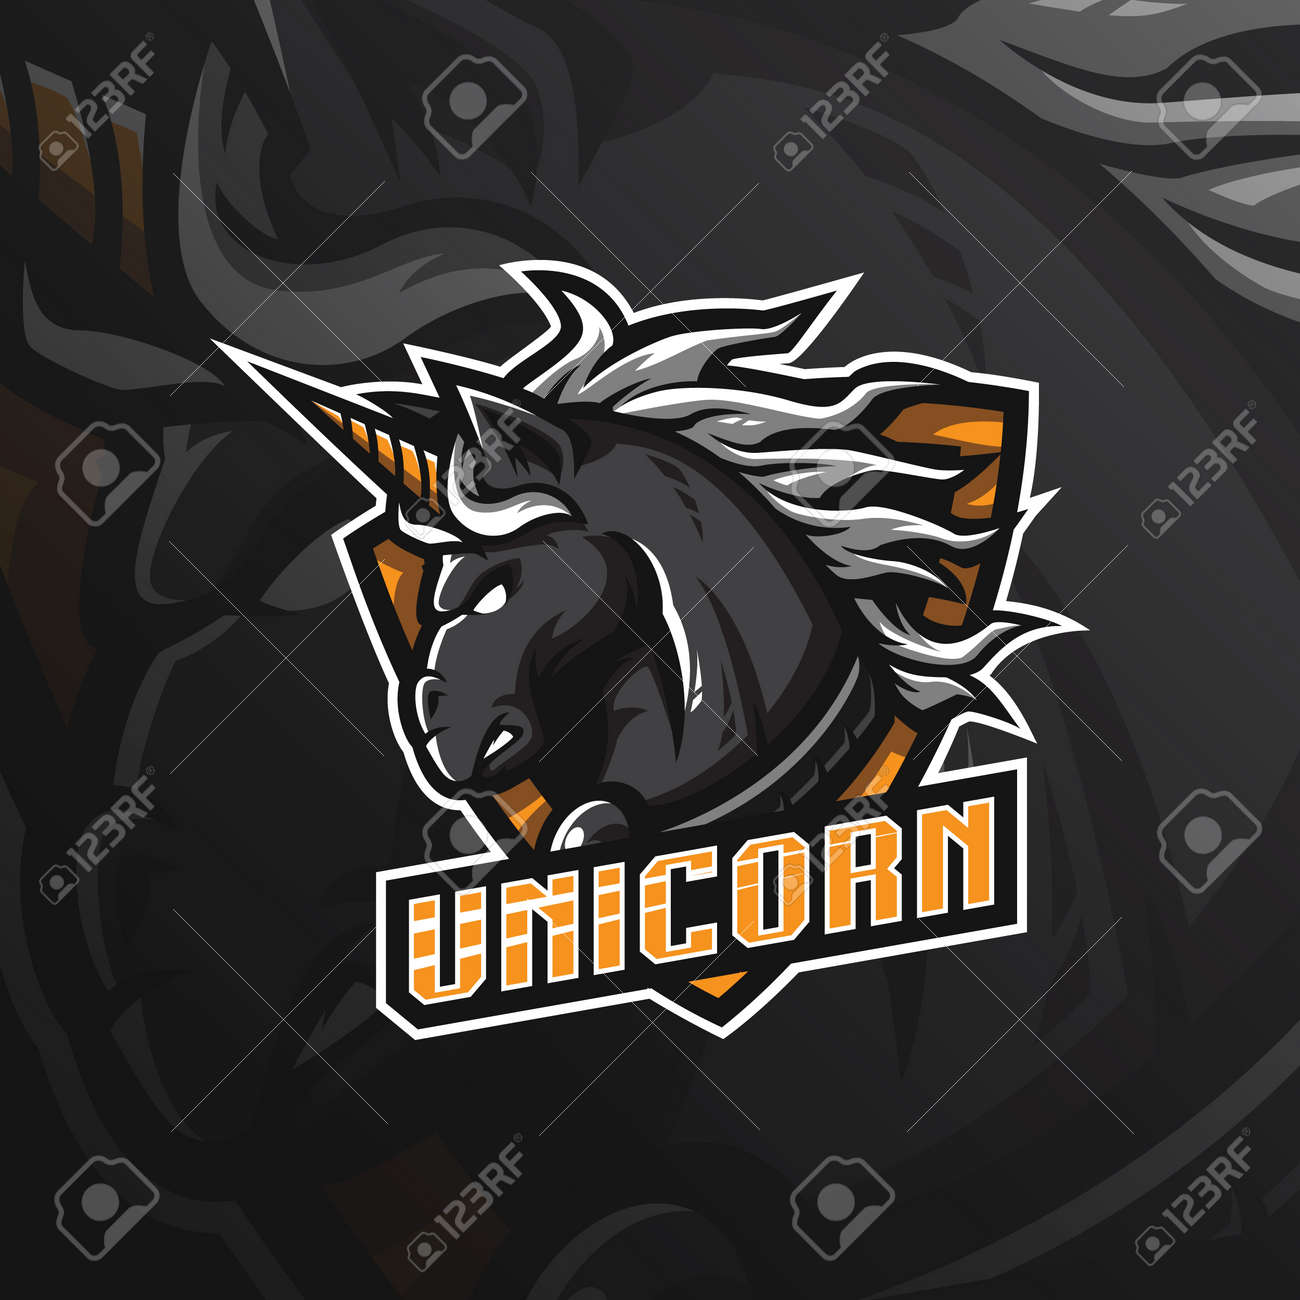 Unicorn Horse Vector Mascot Logo Design With Modern Illustration Royalty Free Cliparts Vectors And Stock Illustration Image 118377387